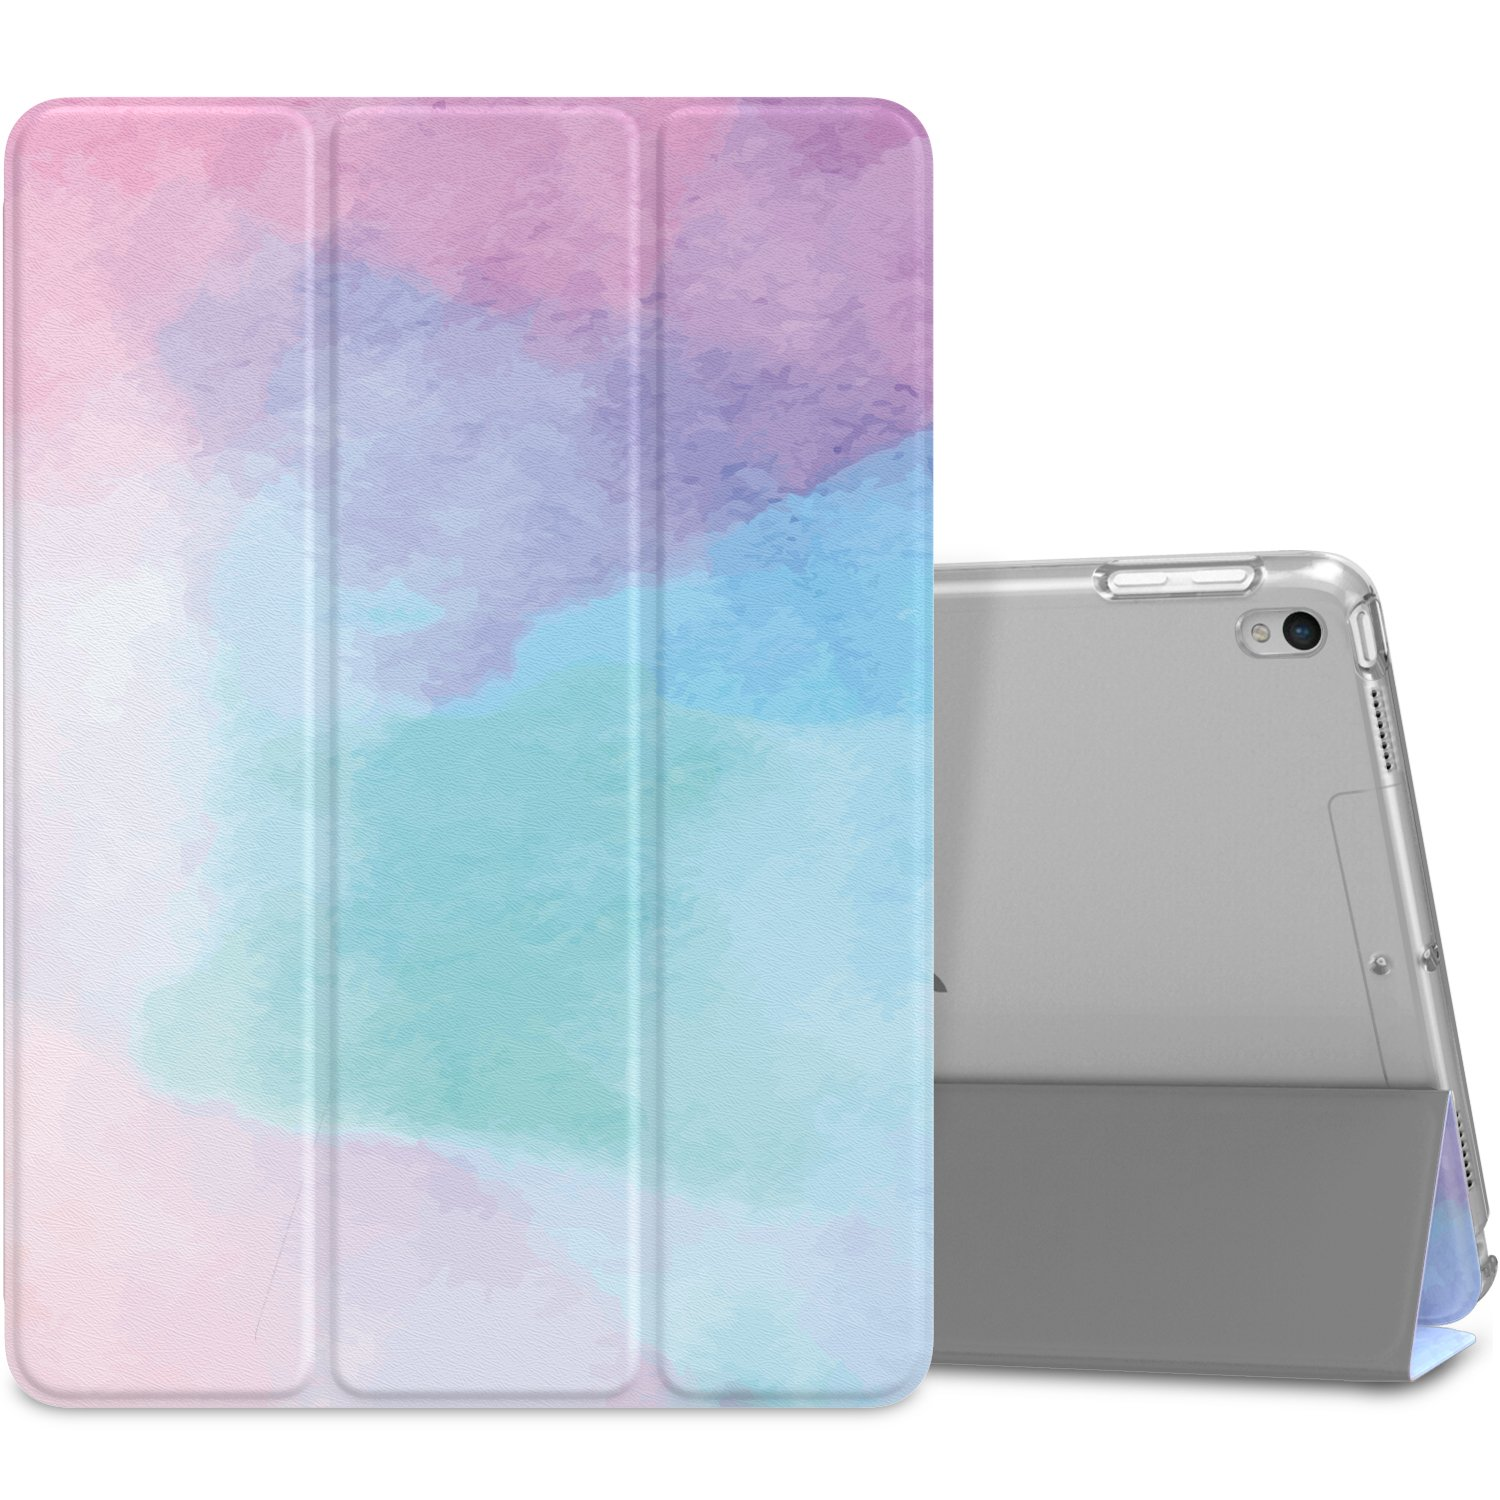 """MoKo Case Fit New iPad Air (3rd Generation) 10.5"""" 2019/iPad Pro 10.5 2017 - Slim Lightweight Smart Shell Stand Cover with Translucent Frosted Back Protector - Water Color (Auto Wake/Sleep)"""